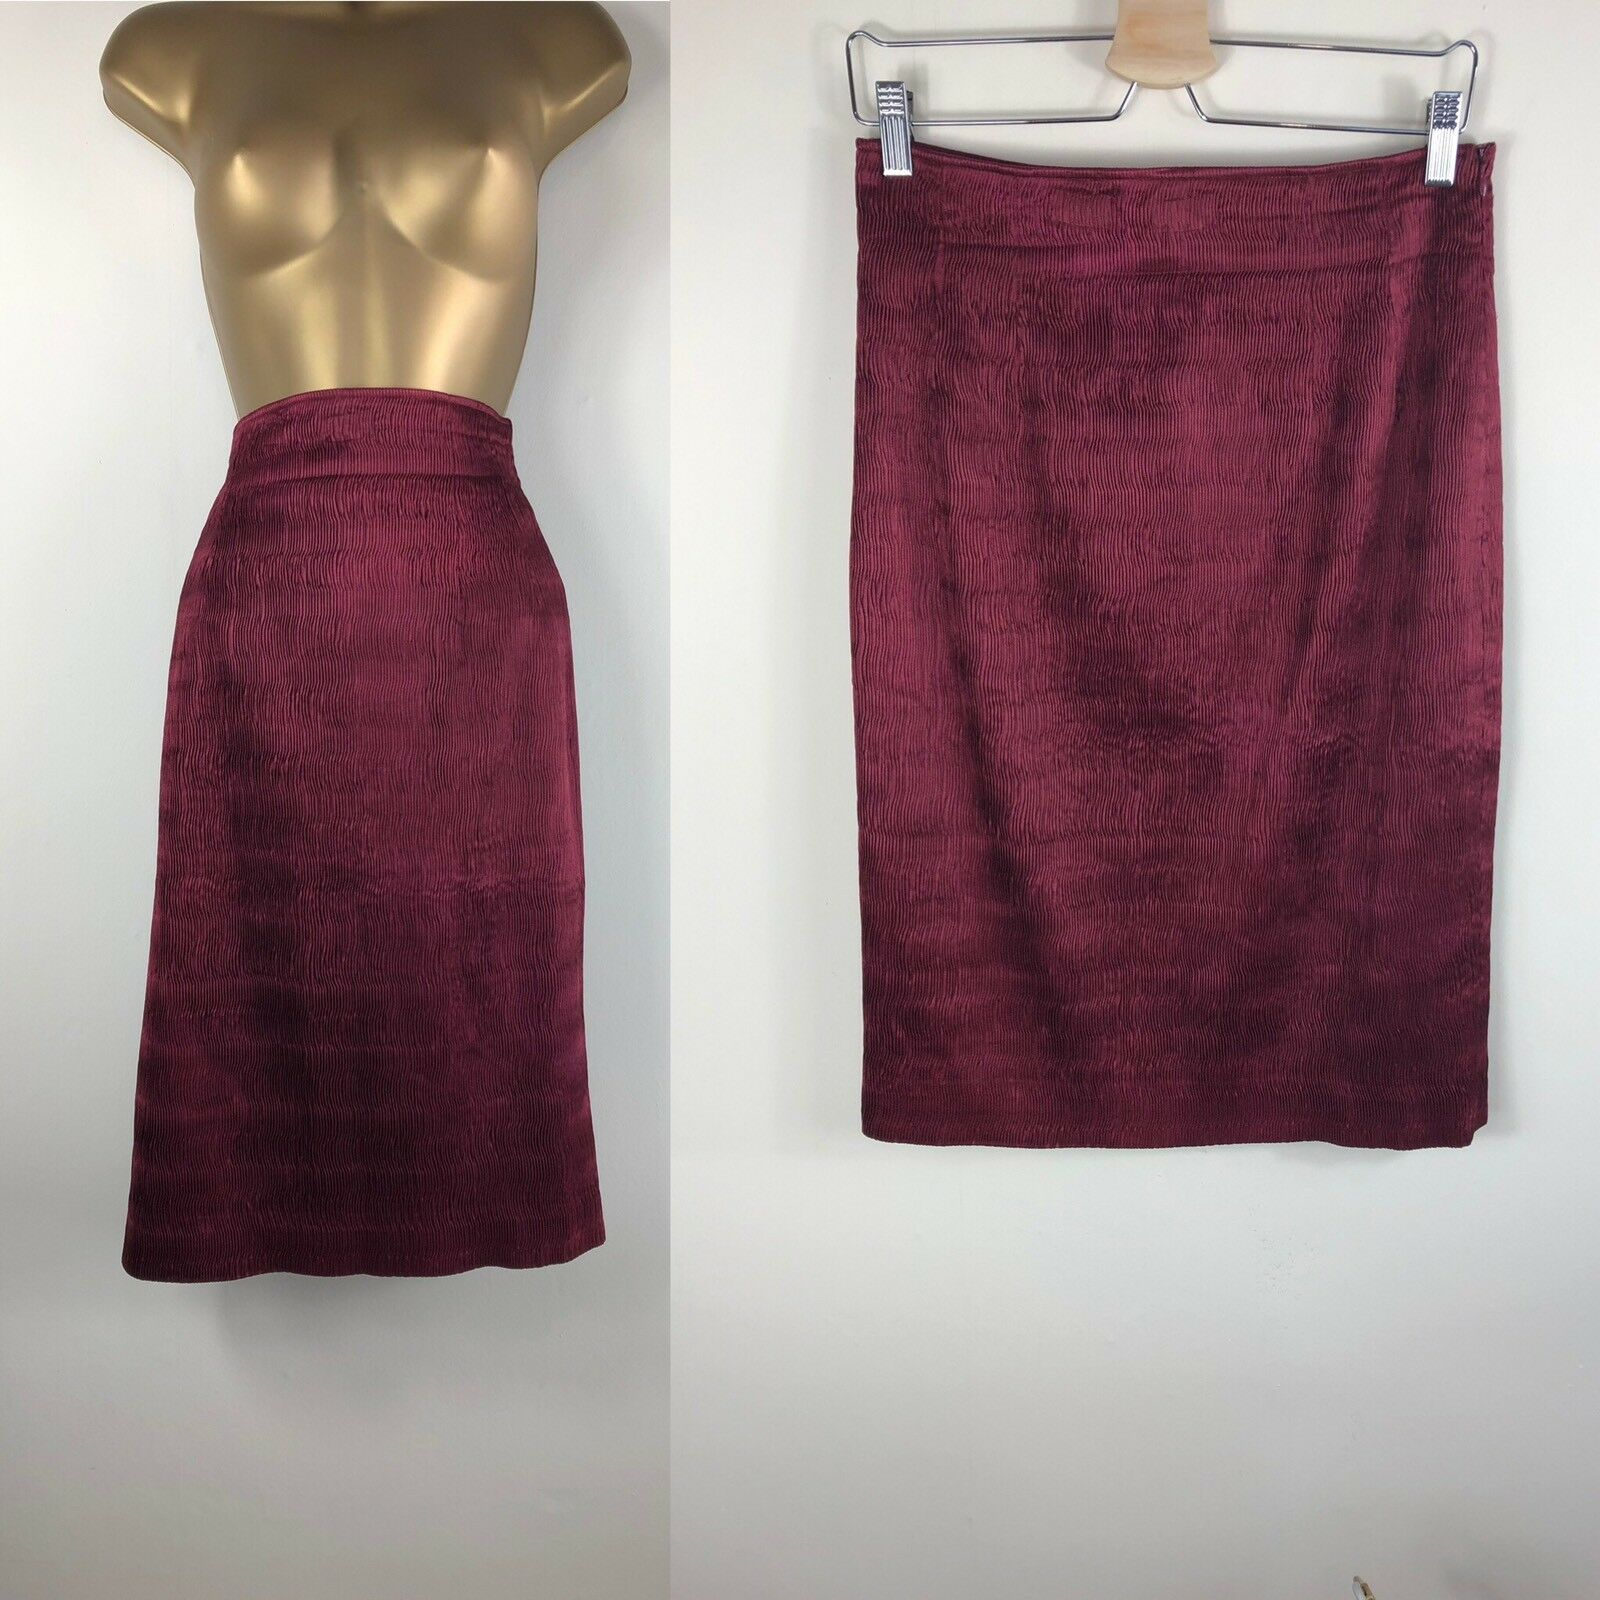 Ladies Rare GENNY BY GIANNI VERSACE Size 8 Silk Maroon Red Pencil Skirt Vintage